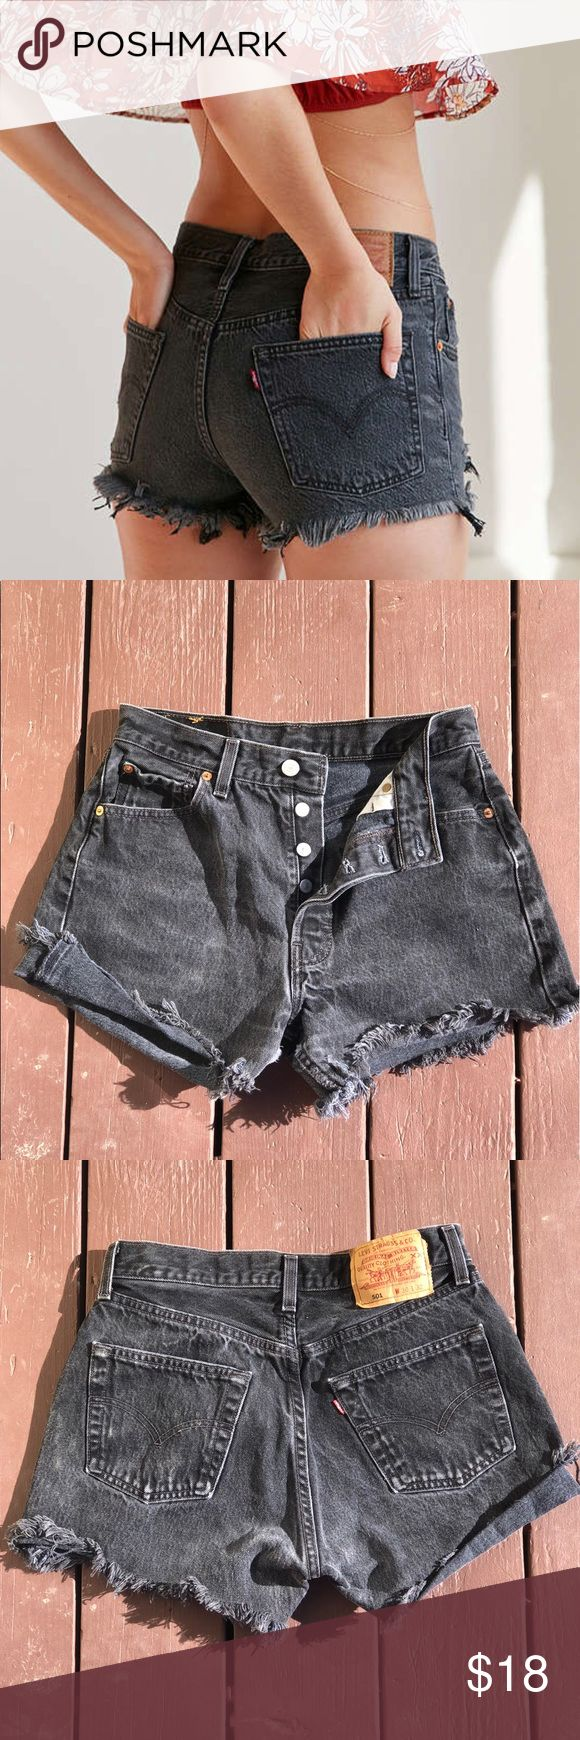 Levi's 501 Black Cut Off Shorts W30 L32 🏖 Levi's distressed black frayed cut off denim shorts. 4 buttons concealed. Size W30 x 32L.  No defects. Be beach or festival ready for cheap. 🤑 Levi's Shorts Jean Shorts